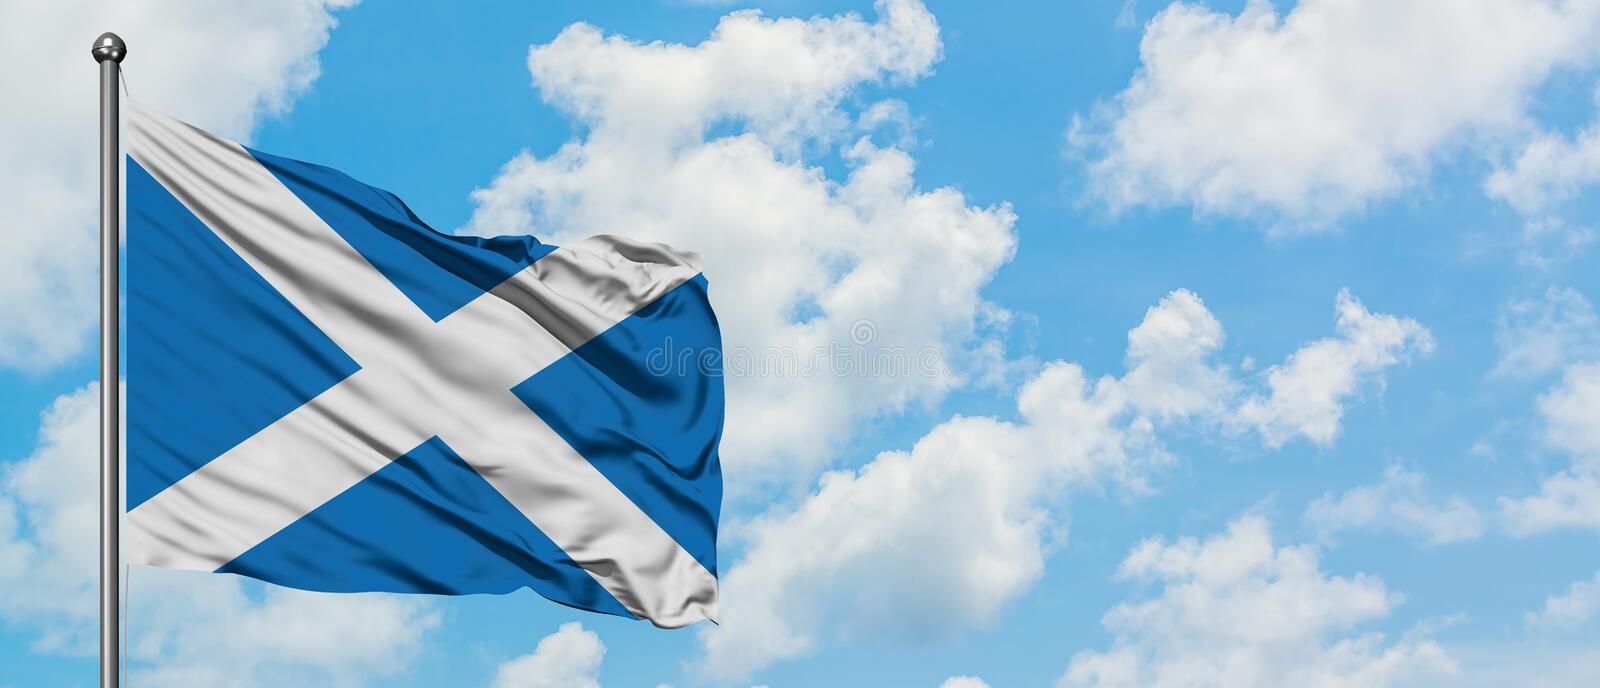 Scotland flag waving in the wind against white cloudy blue sky. Diplomacy concept, international relations.  royalty free stock image